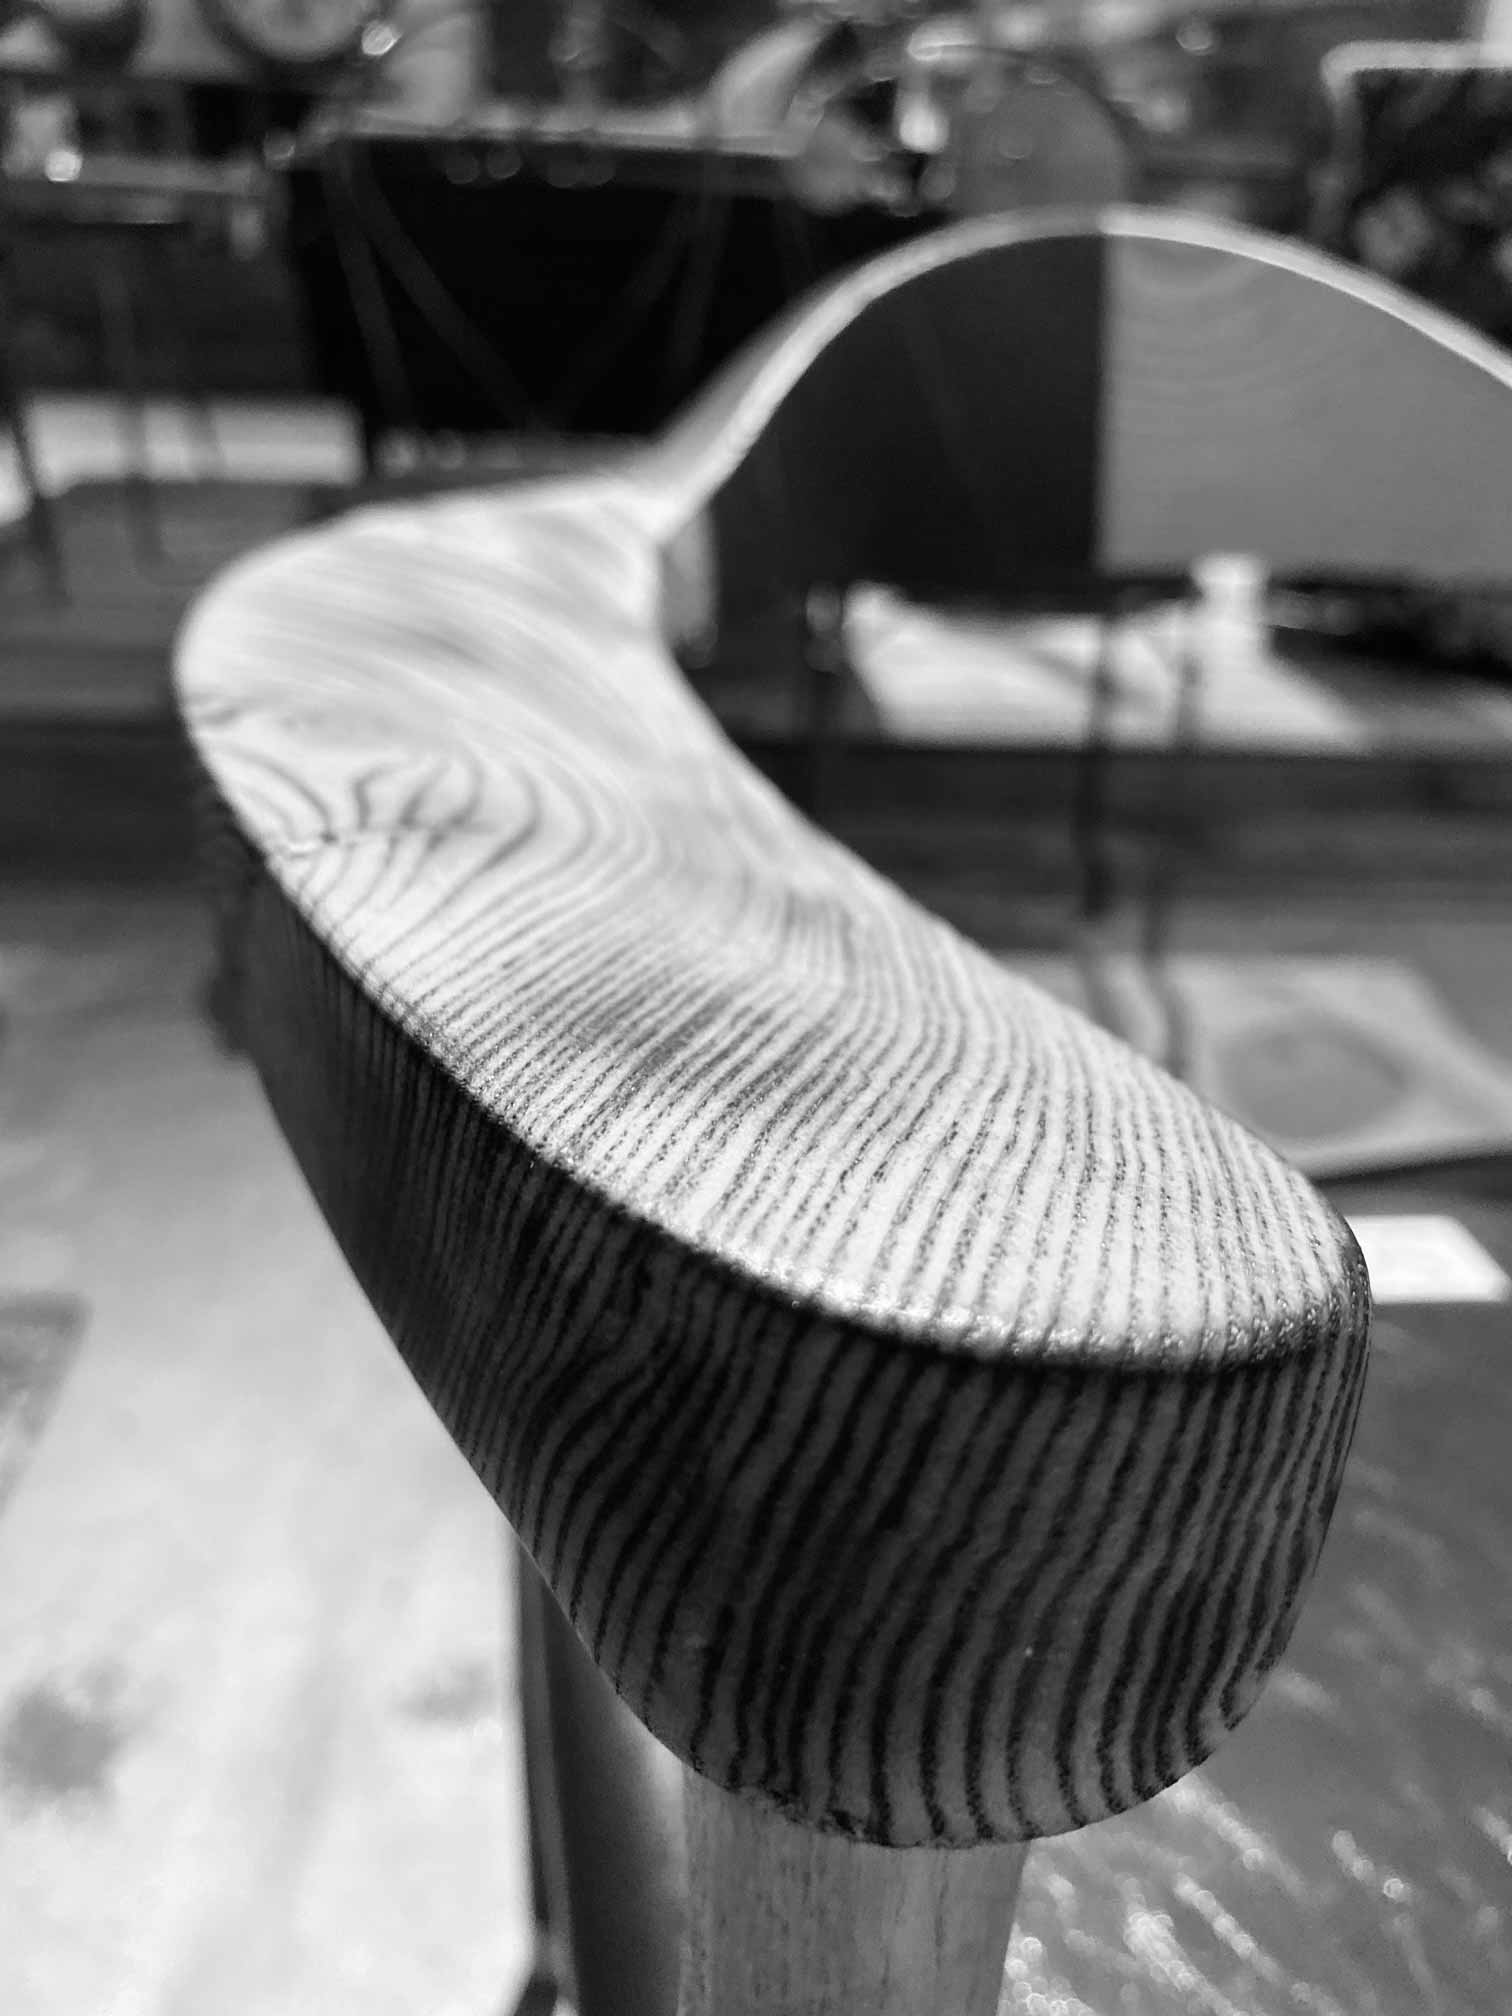 Handcrafted Furniture wood upclose